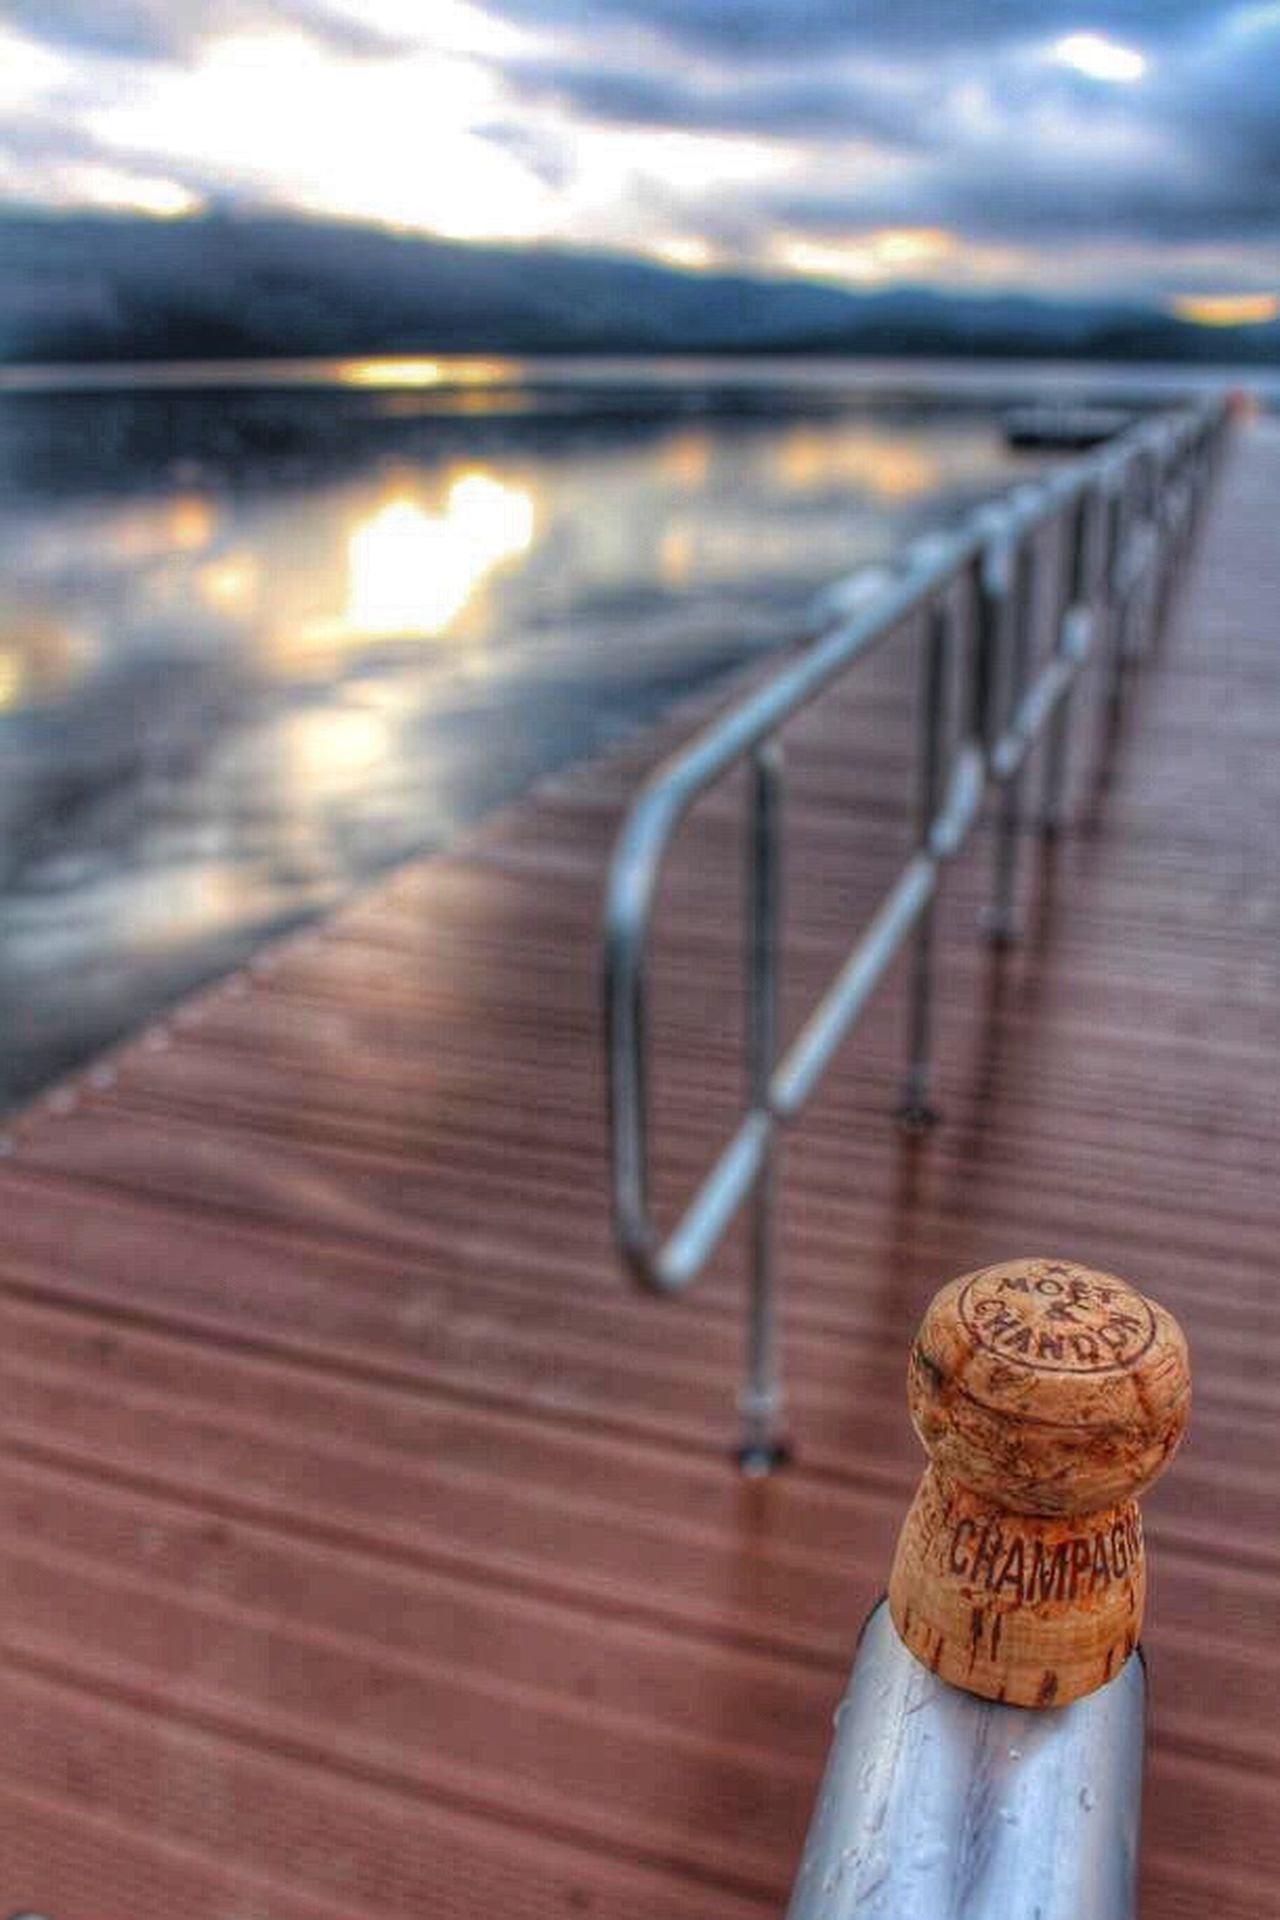 Lieblingsteil Water Railing Nature Outdoors No People Close-up Sky Beauty In Nature Scotland Champagne Moet & Chandon Moet Moetmoment Moëtchandon Celebration Morning After The Night Before Morning After Sunrise Sunrise_sunsets_aroundworld